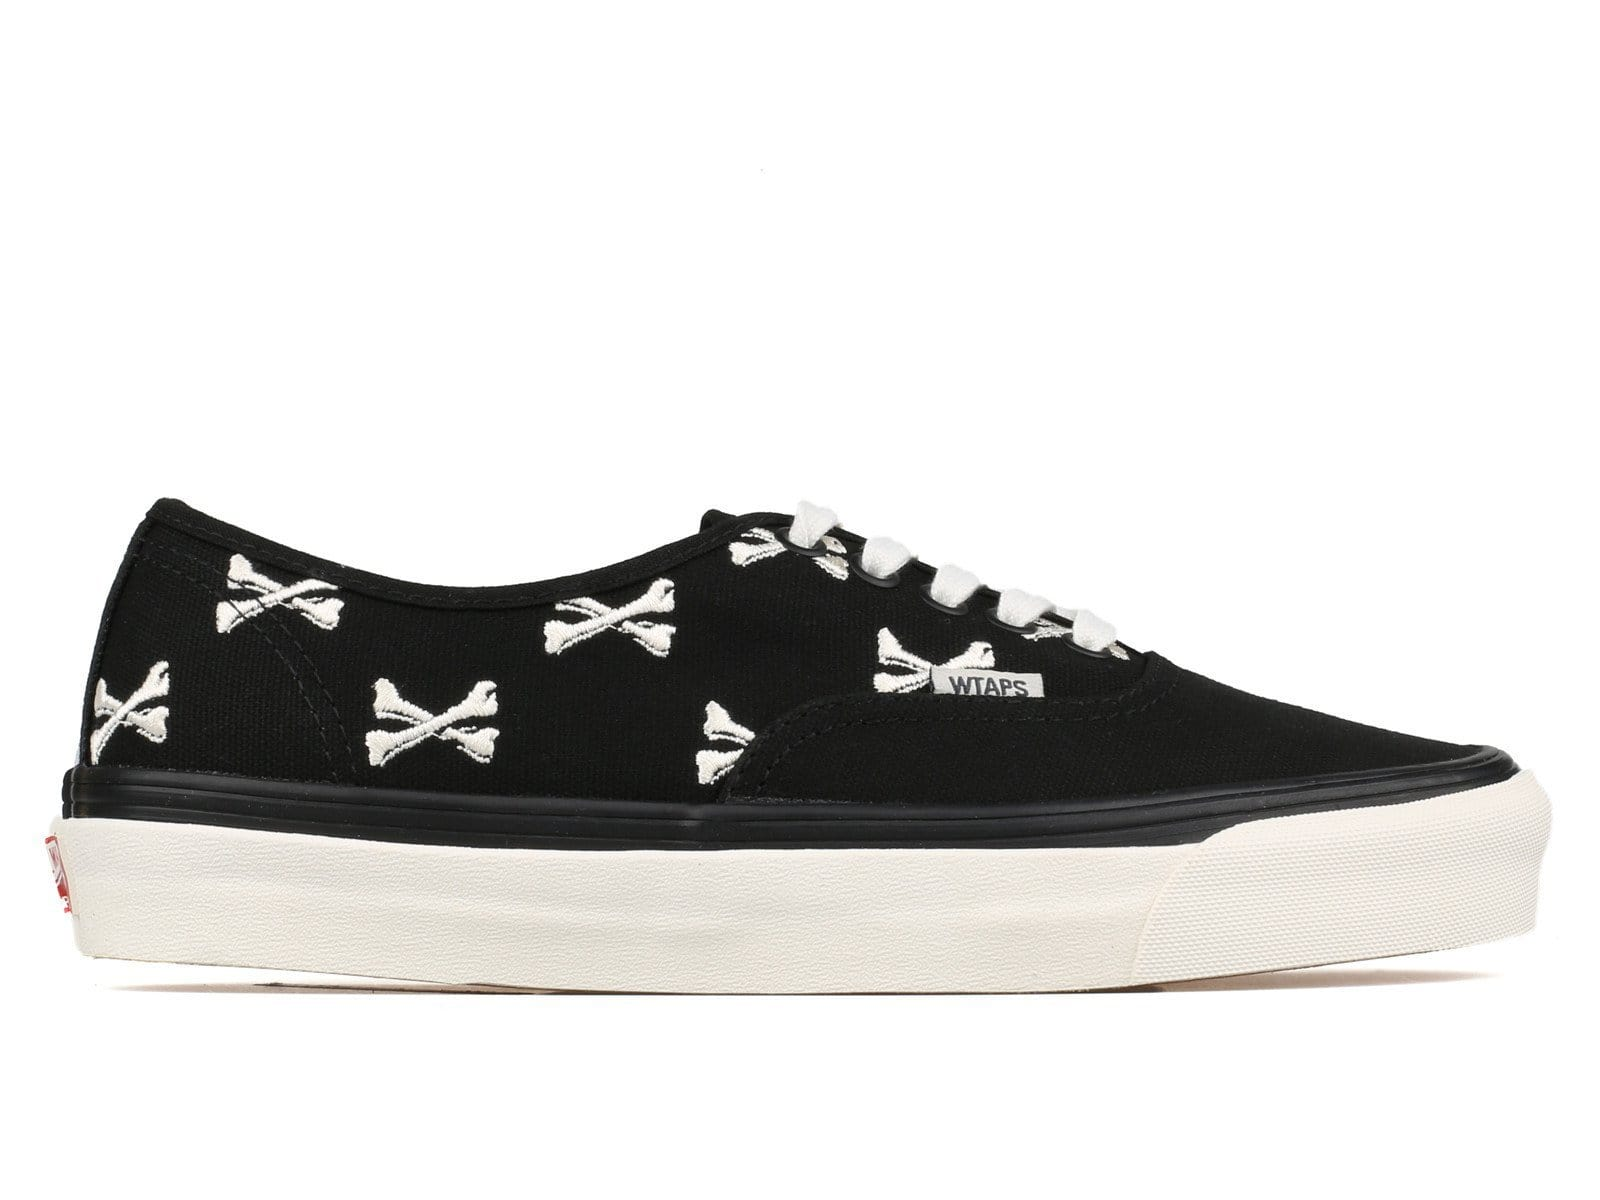 95e72ae695 Vans Vault x WTAPS OG Authentic LX Bones Black Whisper White – Bodega